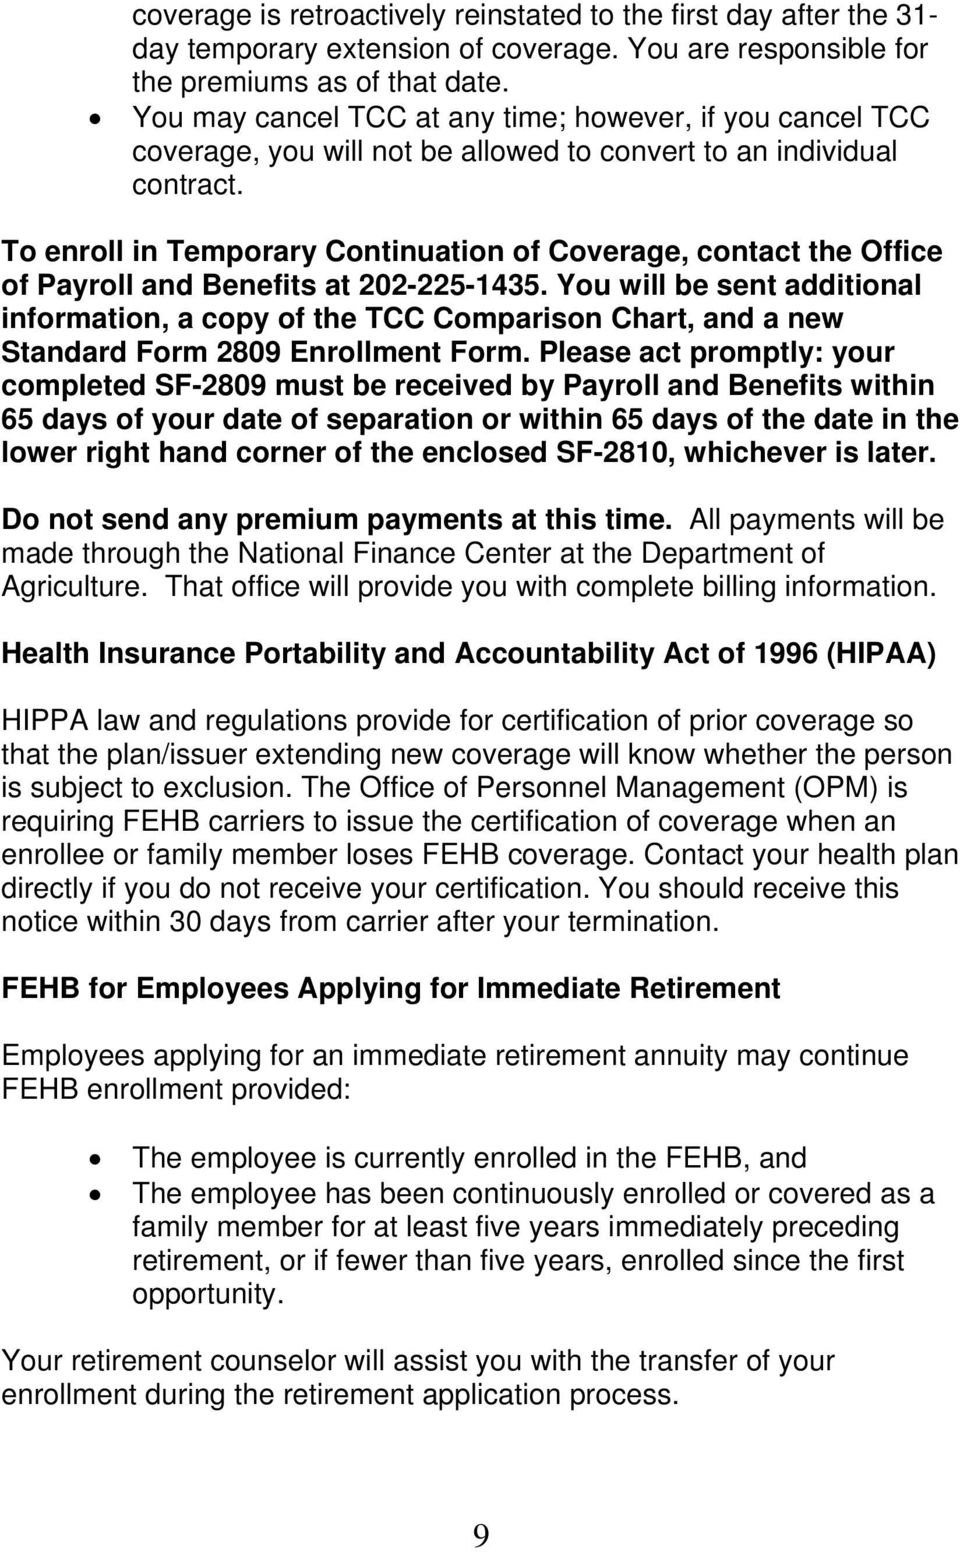 To enroll in Temporary Continuation of Coverage, contact the Office of Payroll and Benefits at 202-225-1435.